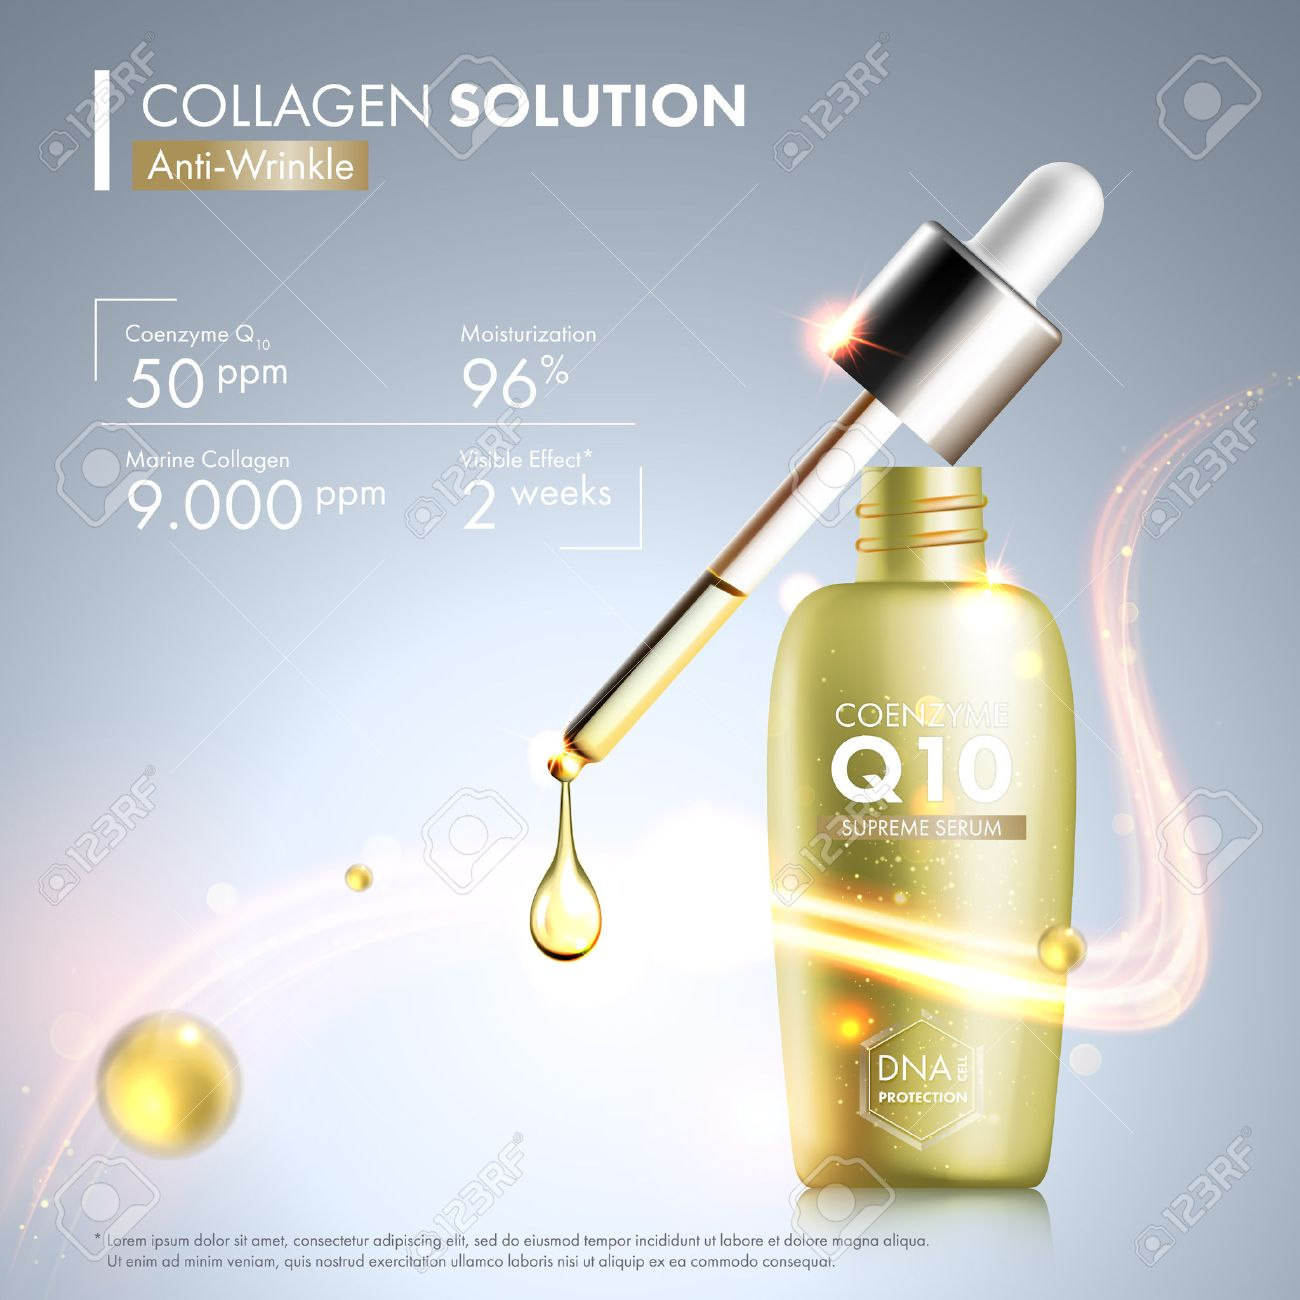 4caaeb6a130 Coenzyme Q10 serum essence bottle with dropper. Skin care moisturizing  treatment vial design. Anti